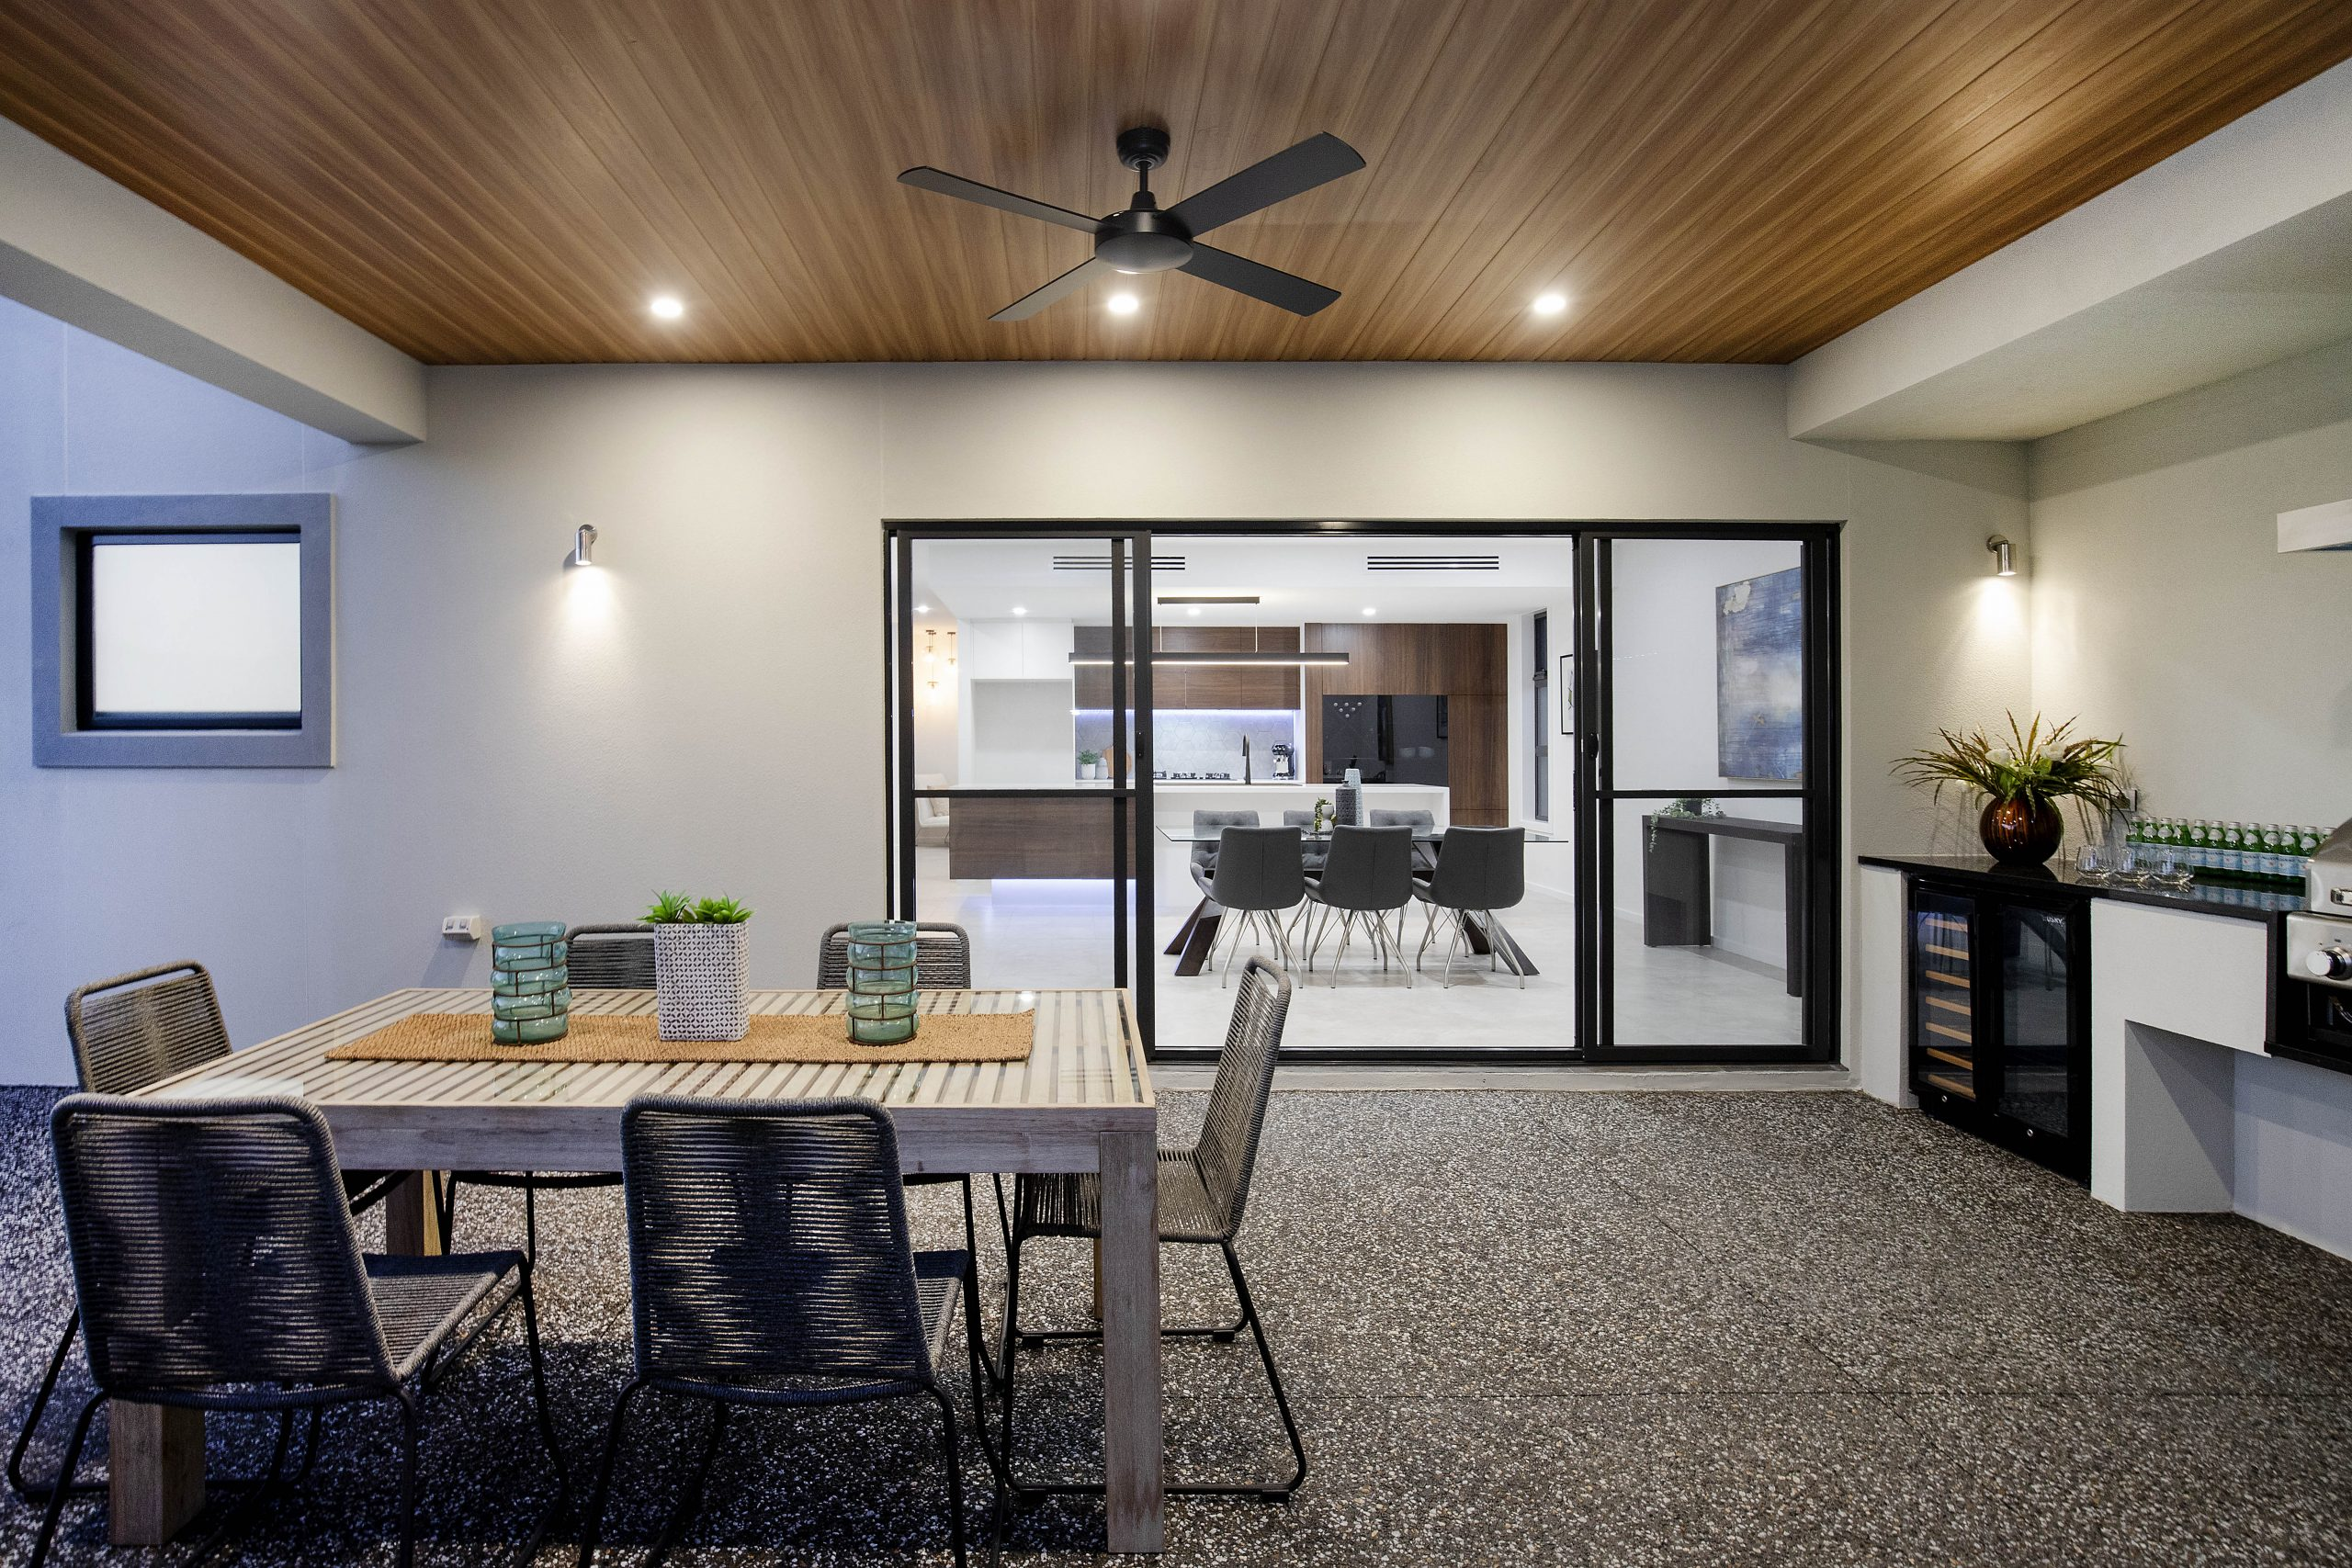 Lighting and Fan Installation by Solectric Australia